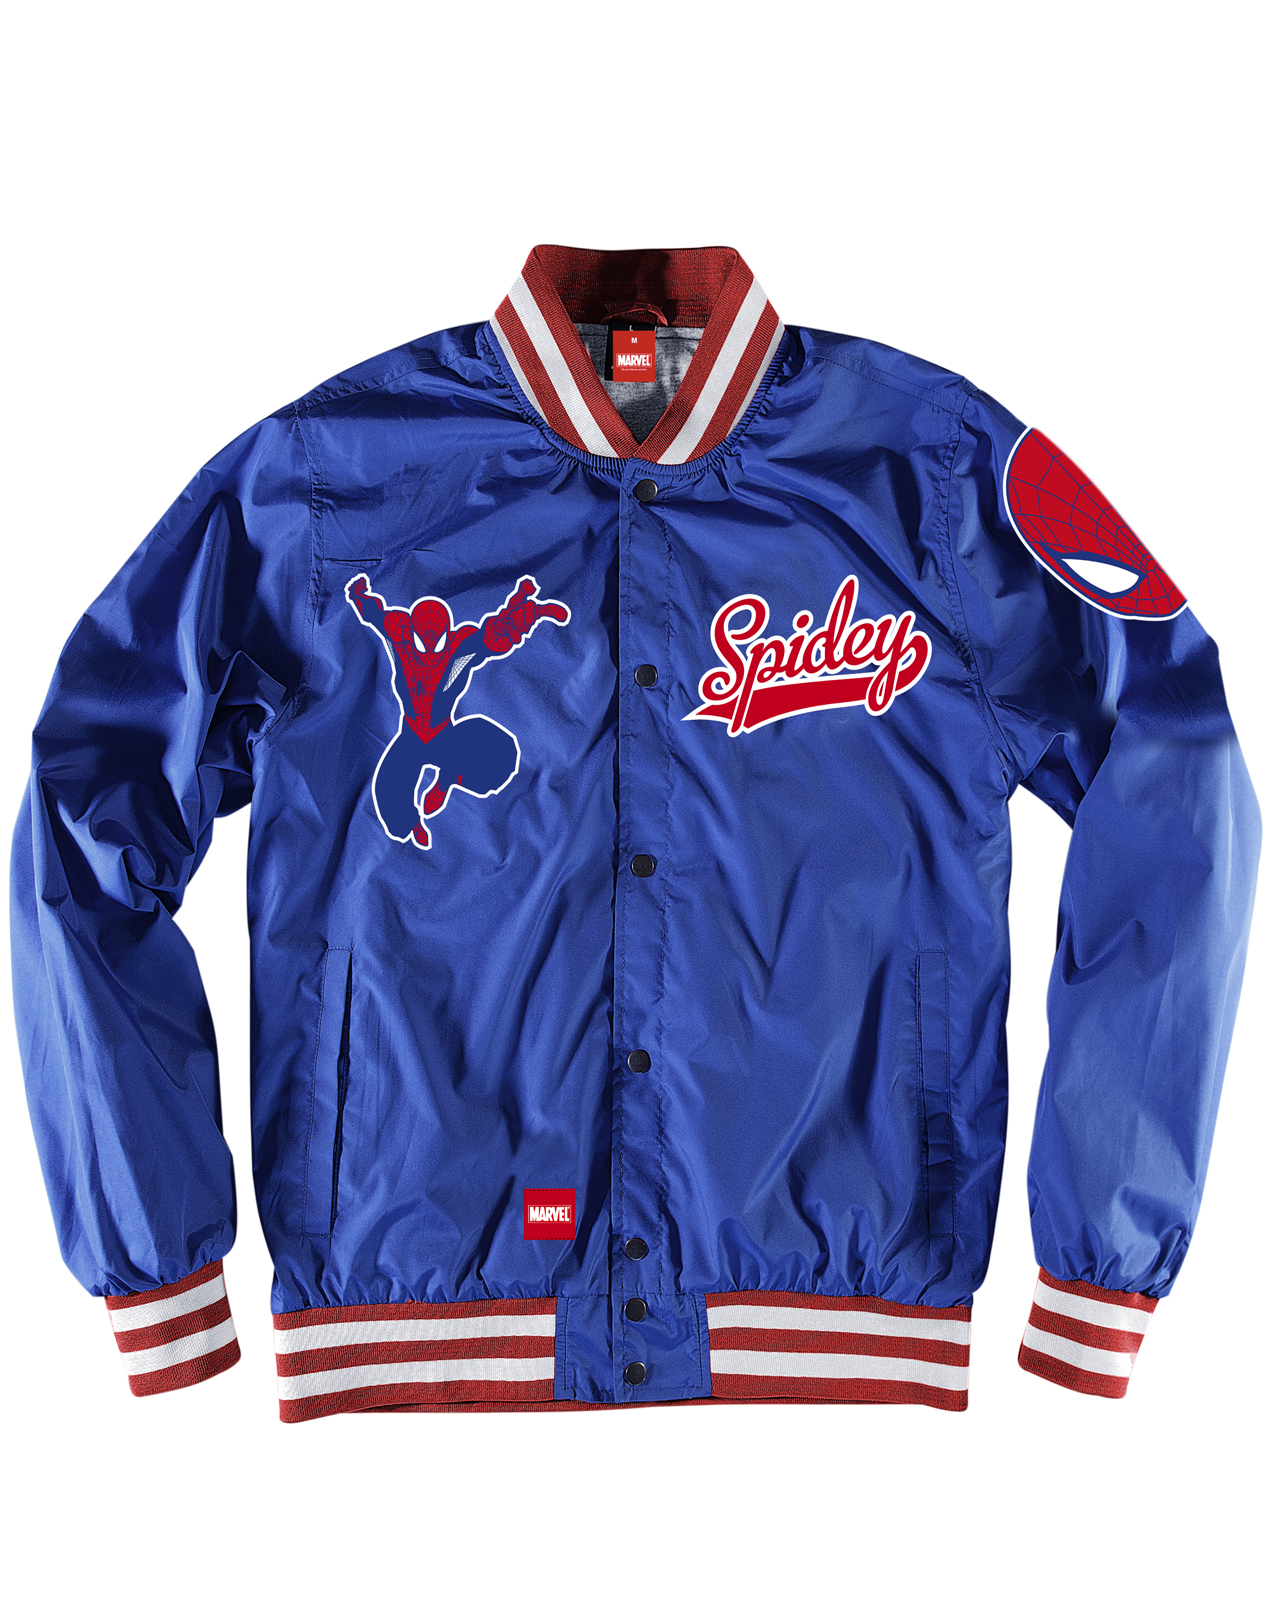 Addict Marvel Spider-Man Superhero Royal Blue Varsity College ...